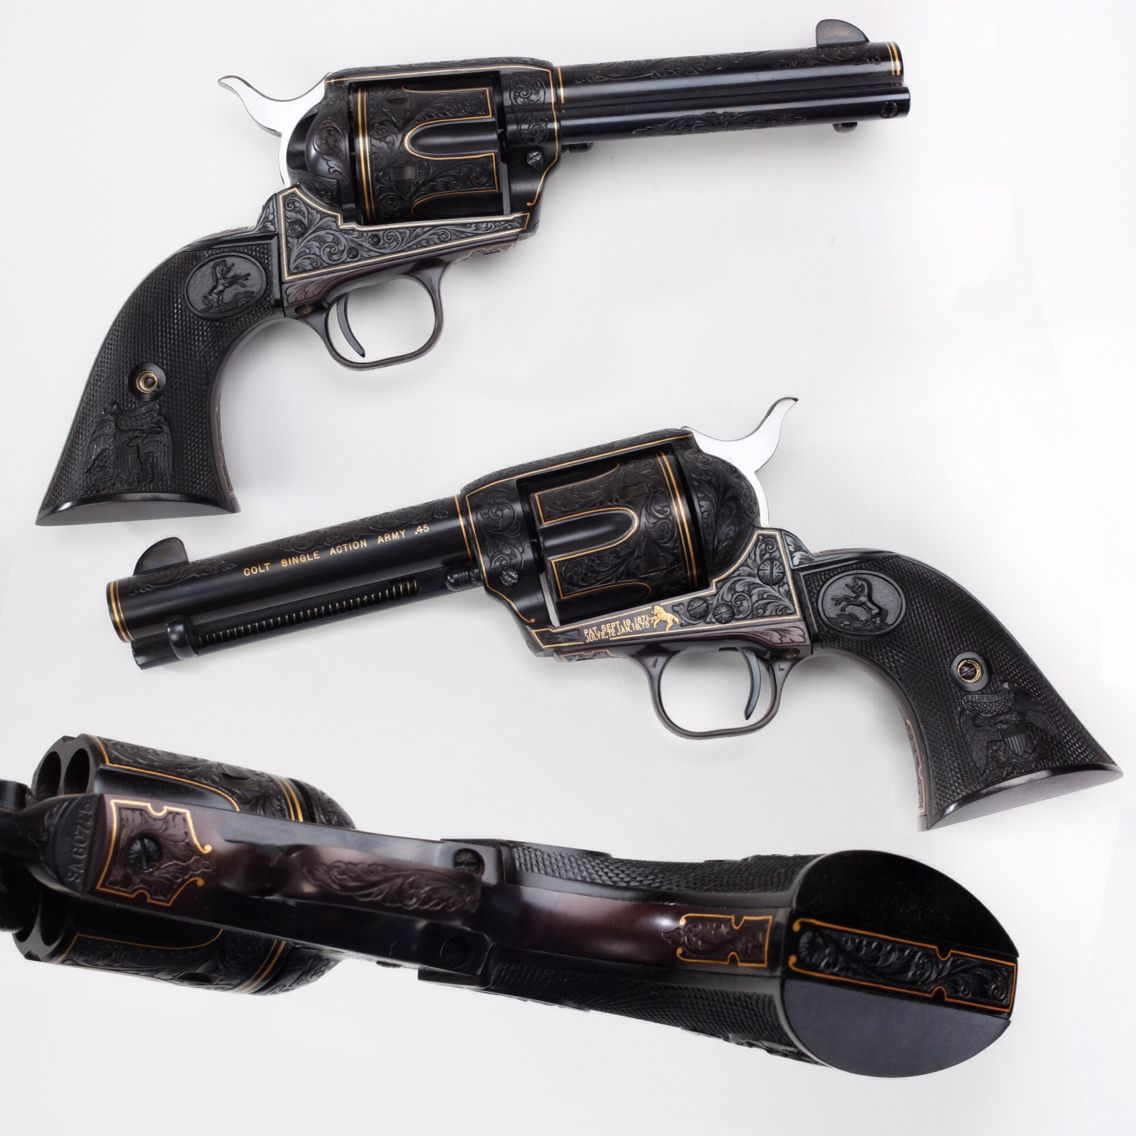 GUN OF THE DAY – Colt Single Action Army (4 ¾ barrel)   Want to see more Colt SAAs? Click here to visit our online galleries: http://bit.ly/1ATq3xA